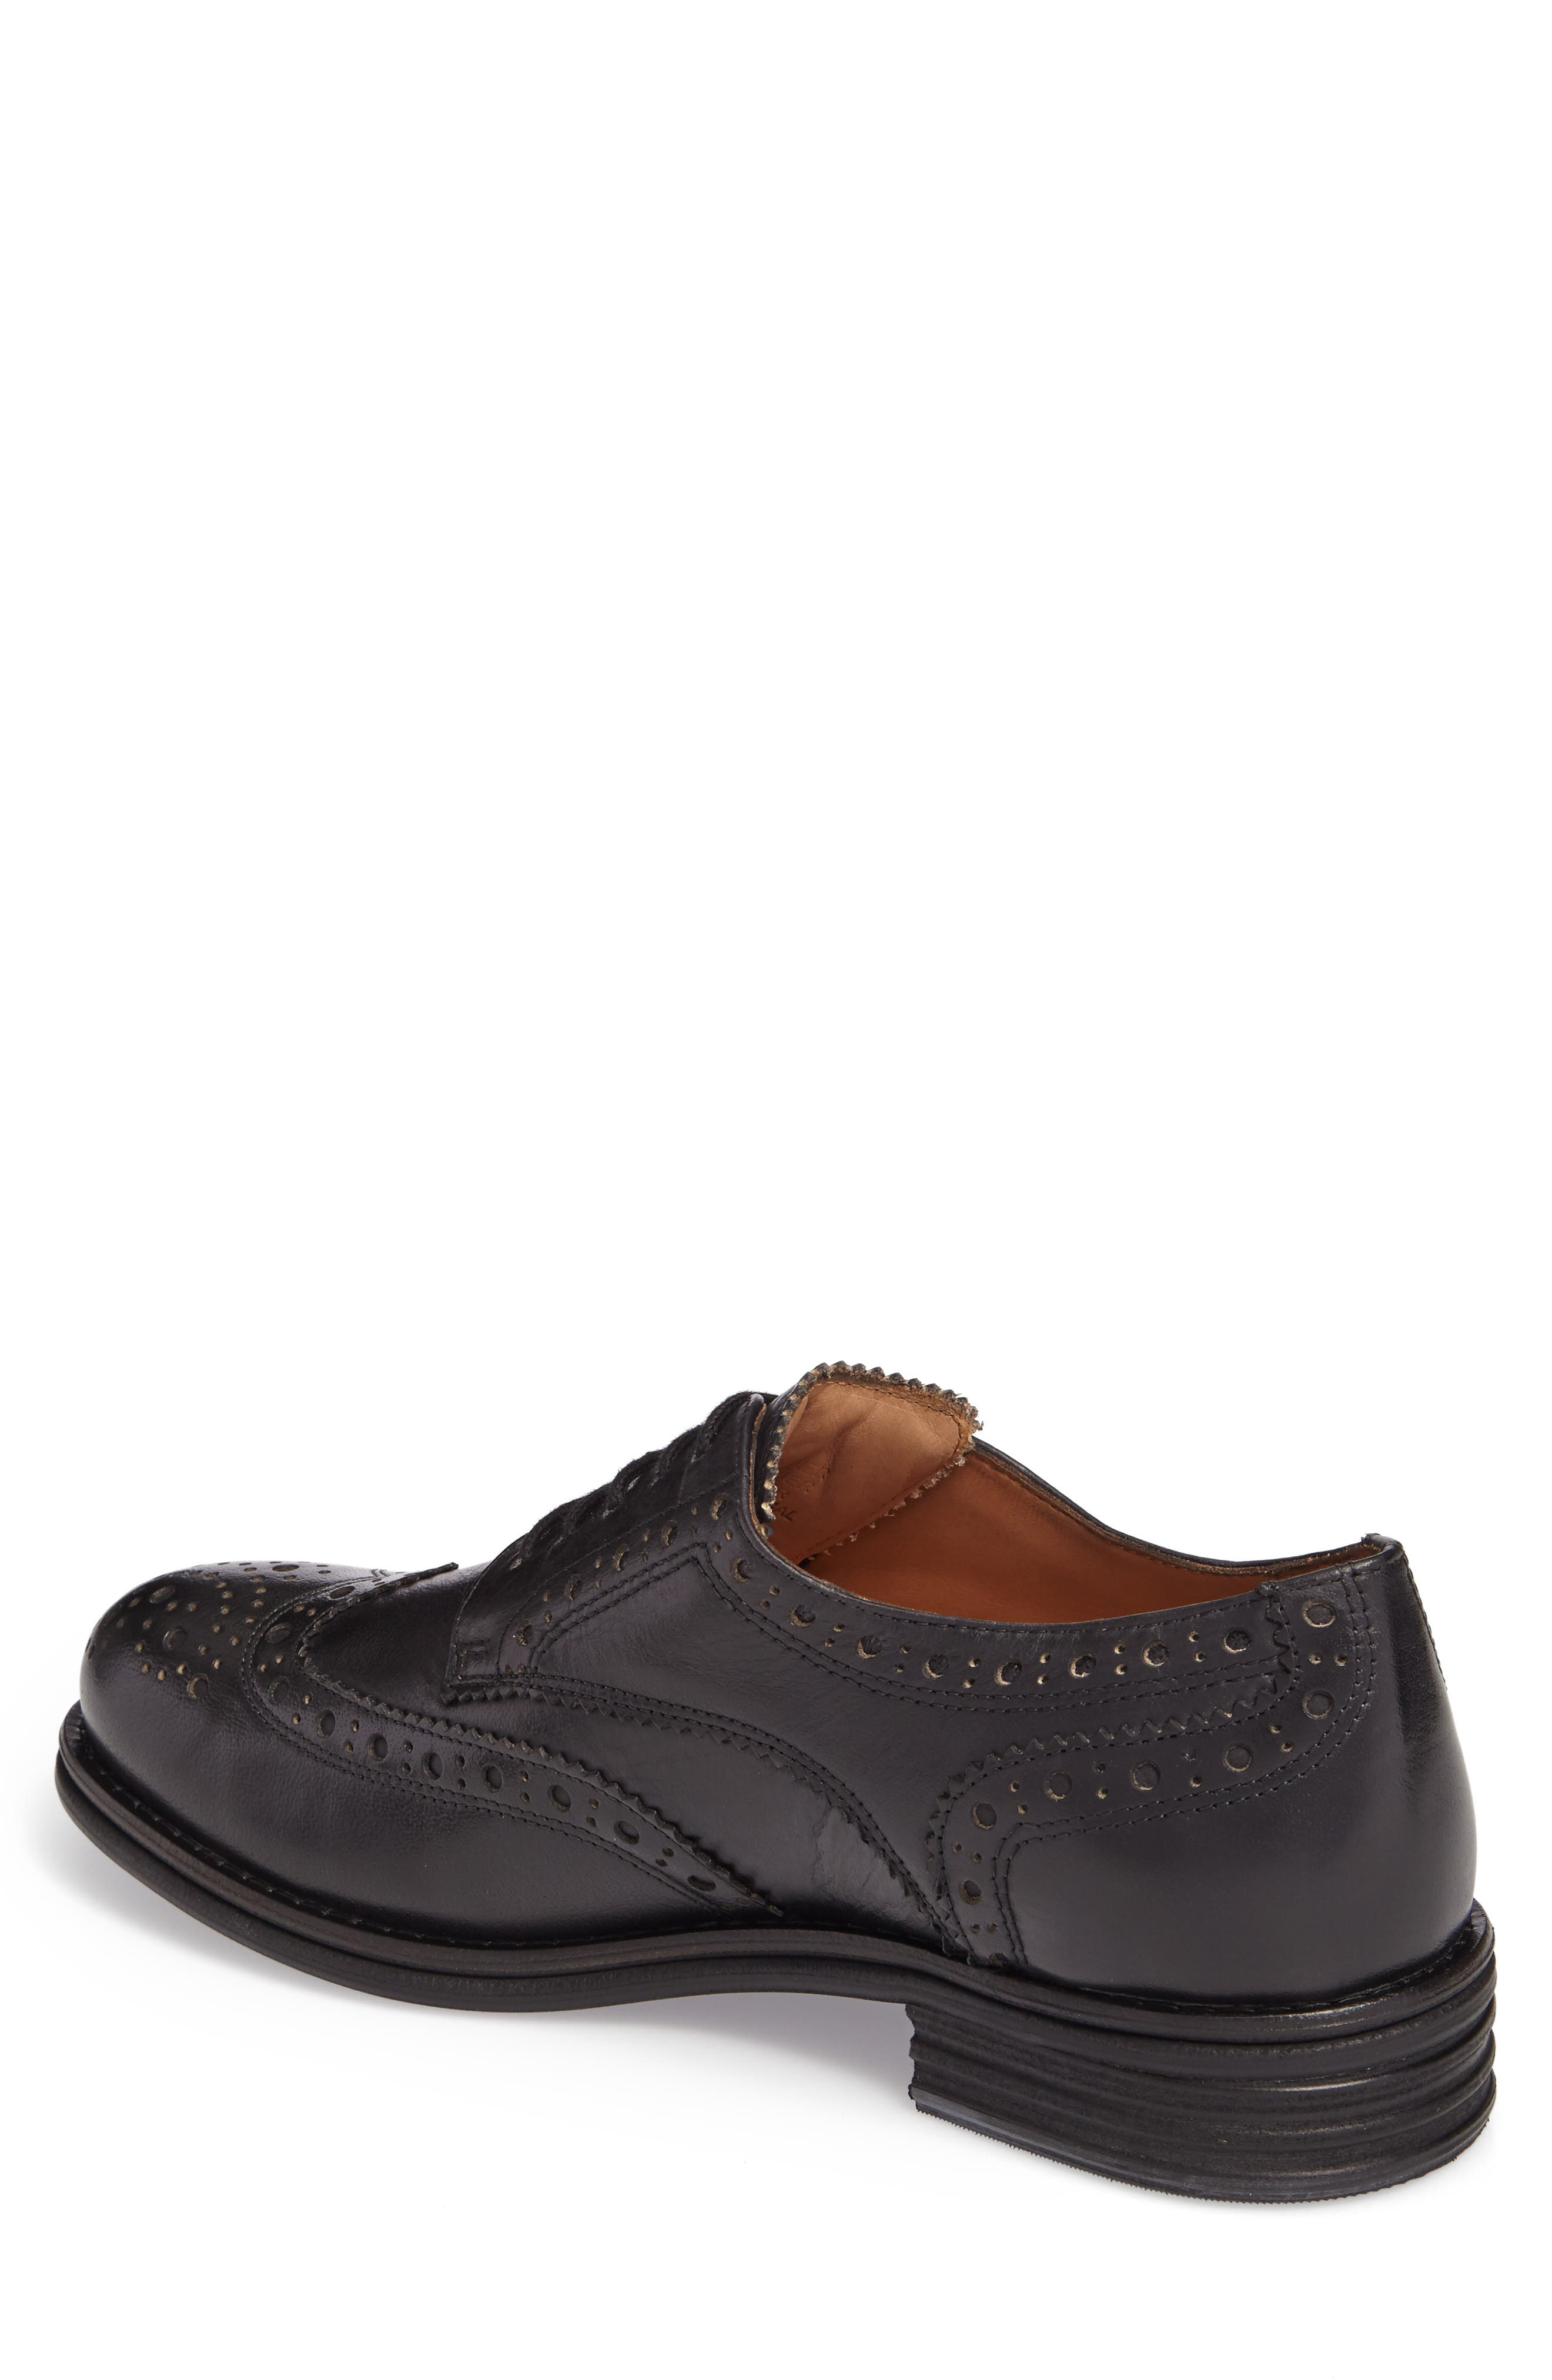 Alternate Image 2  - Vince Camuto Corten Wingtip (Men)